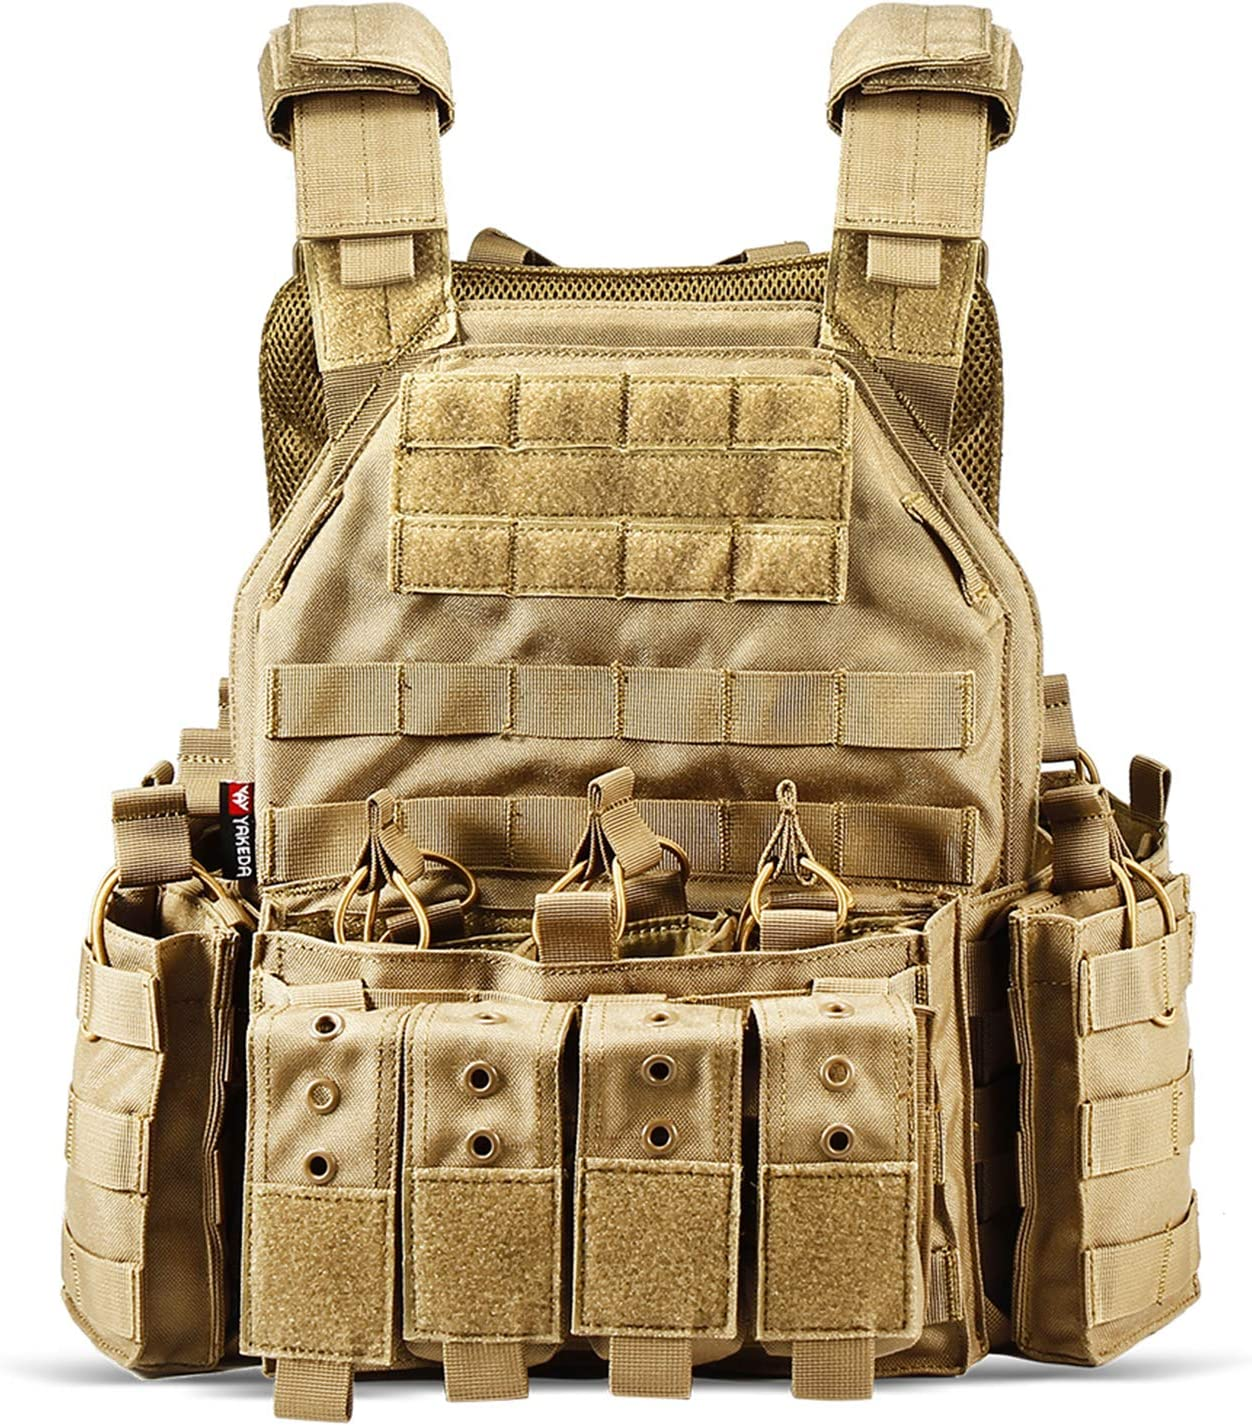 CAMO Tactical Outdoor Vest in Tan Color, 1000D Nylon material, detachable mesh padding